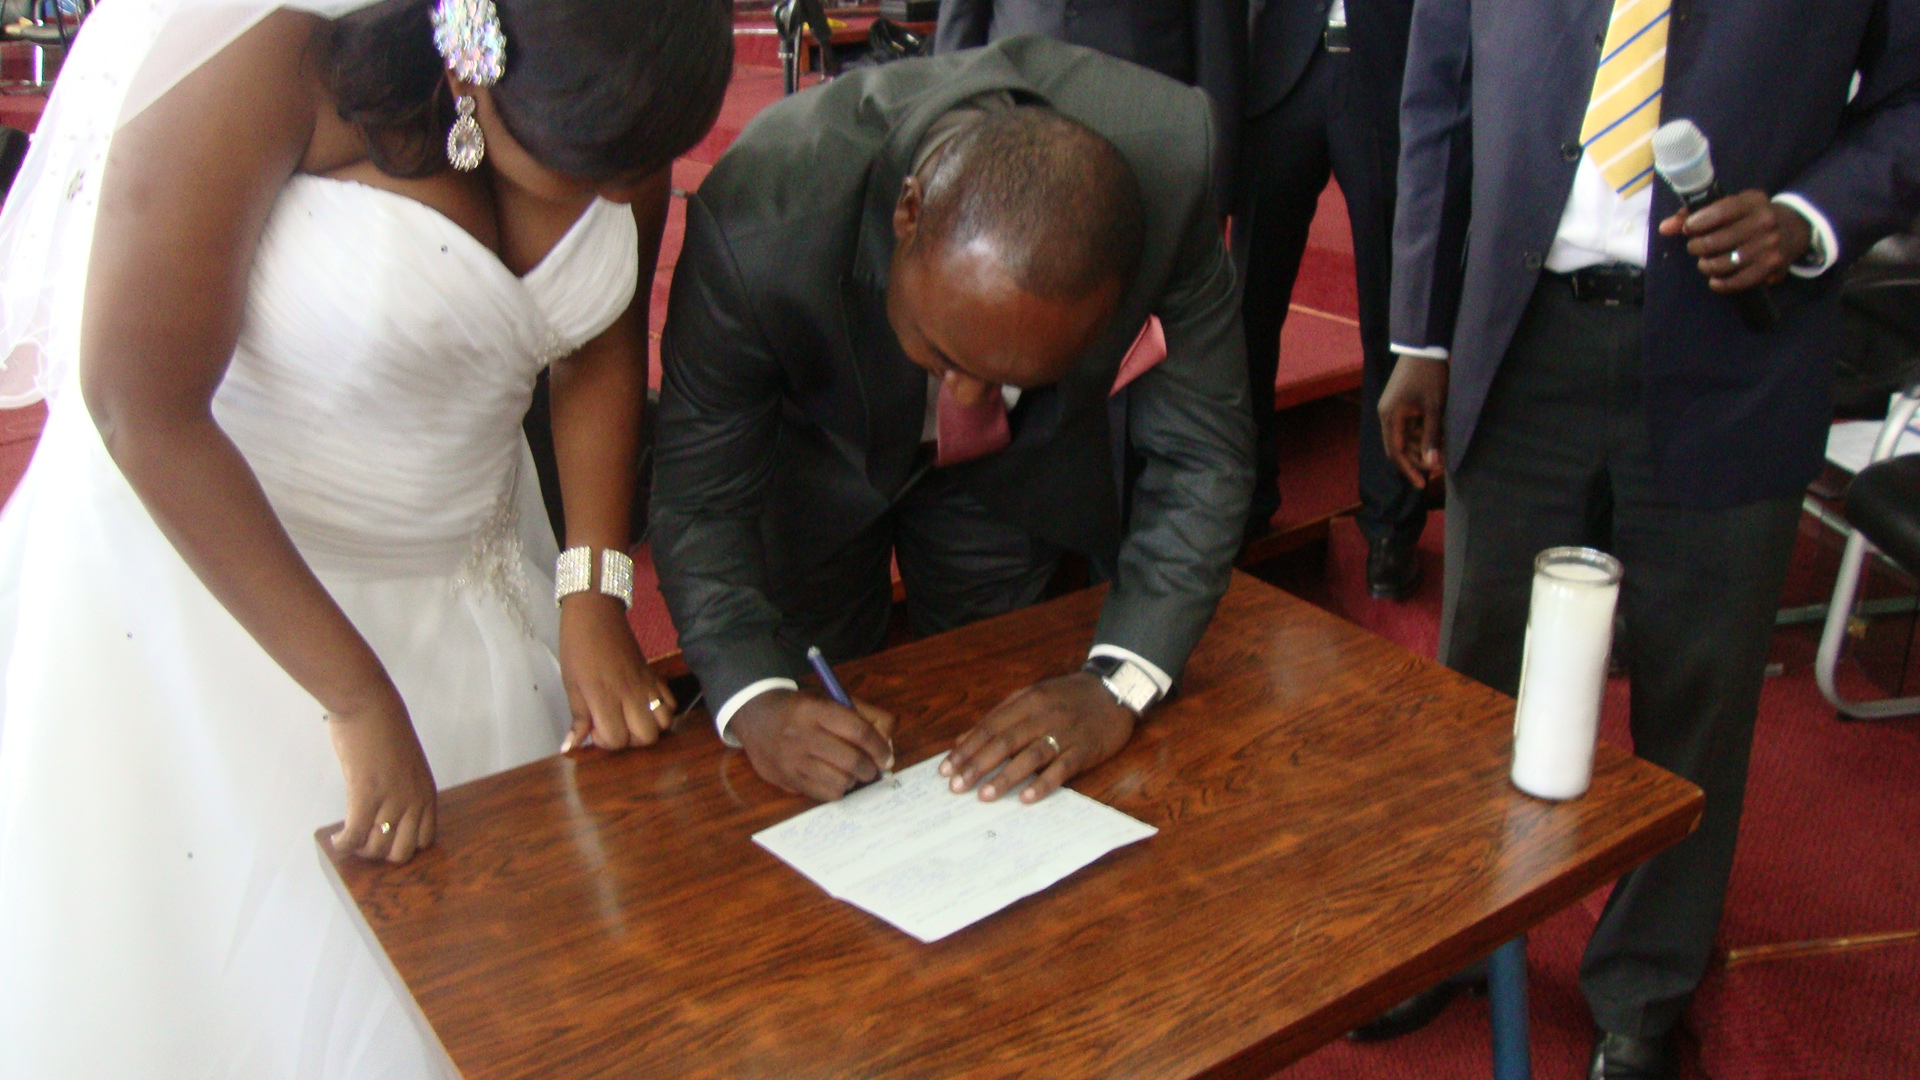 The groom signing the marriage certificate as well.